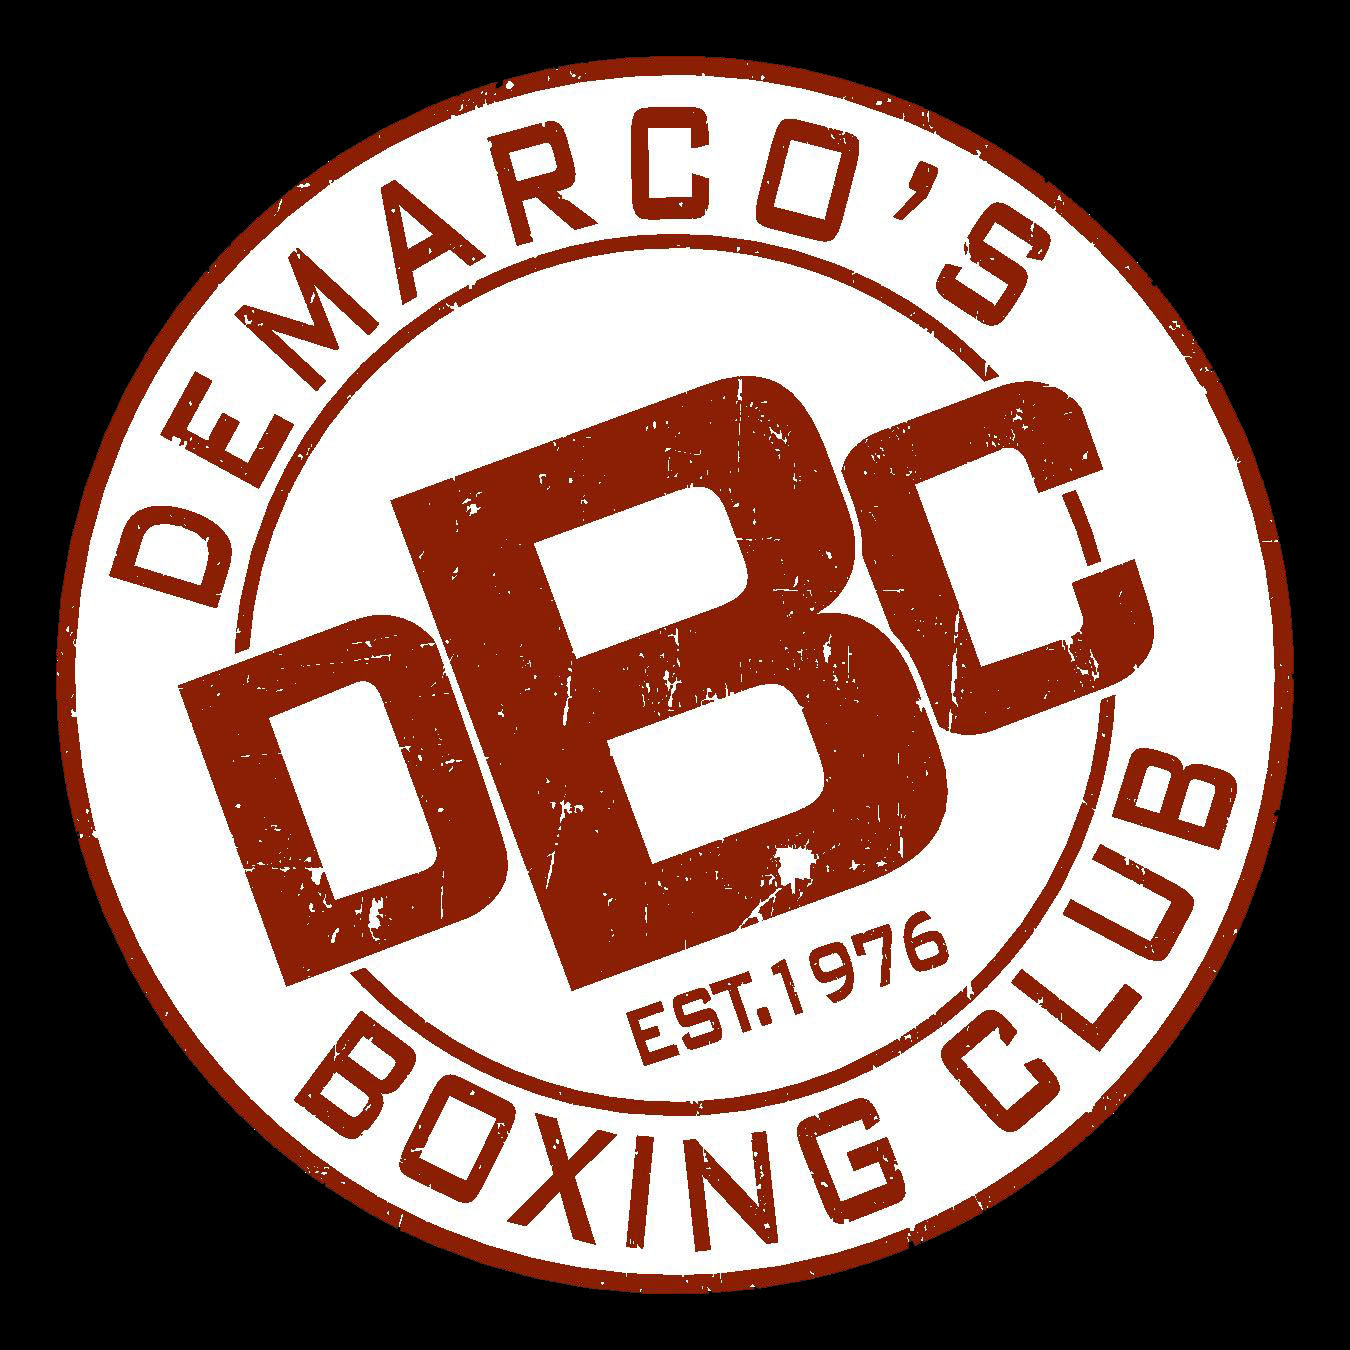 Demarco's Boxing Club